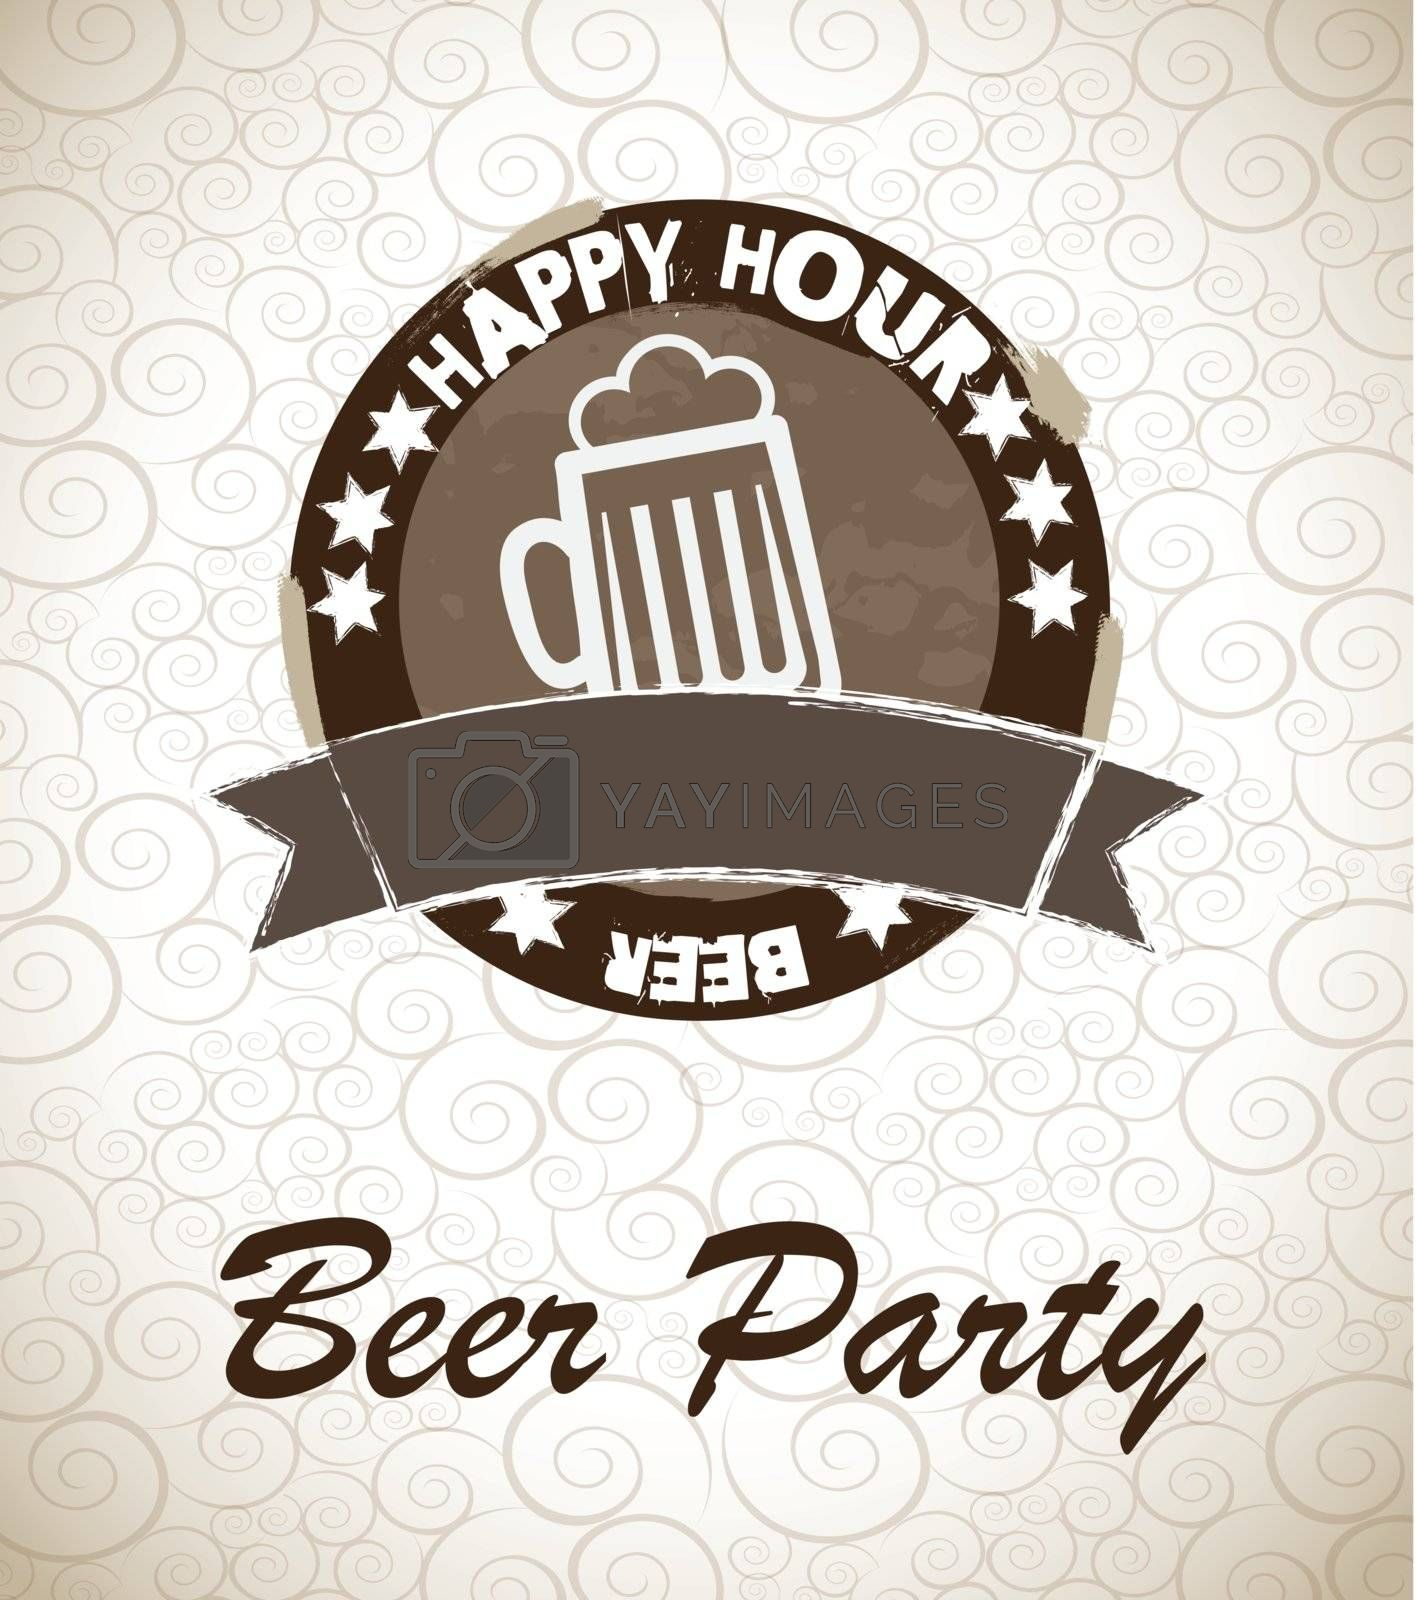 a big glass of beer in signal of happy hour vector illustration